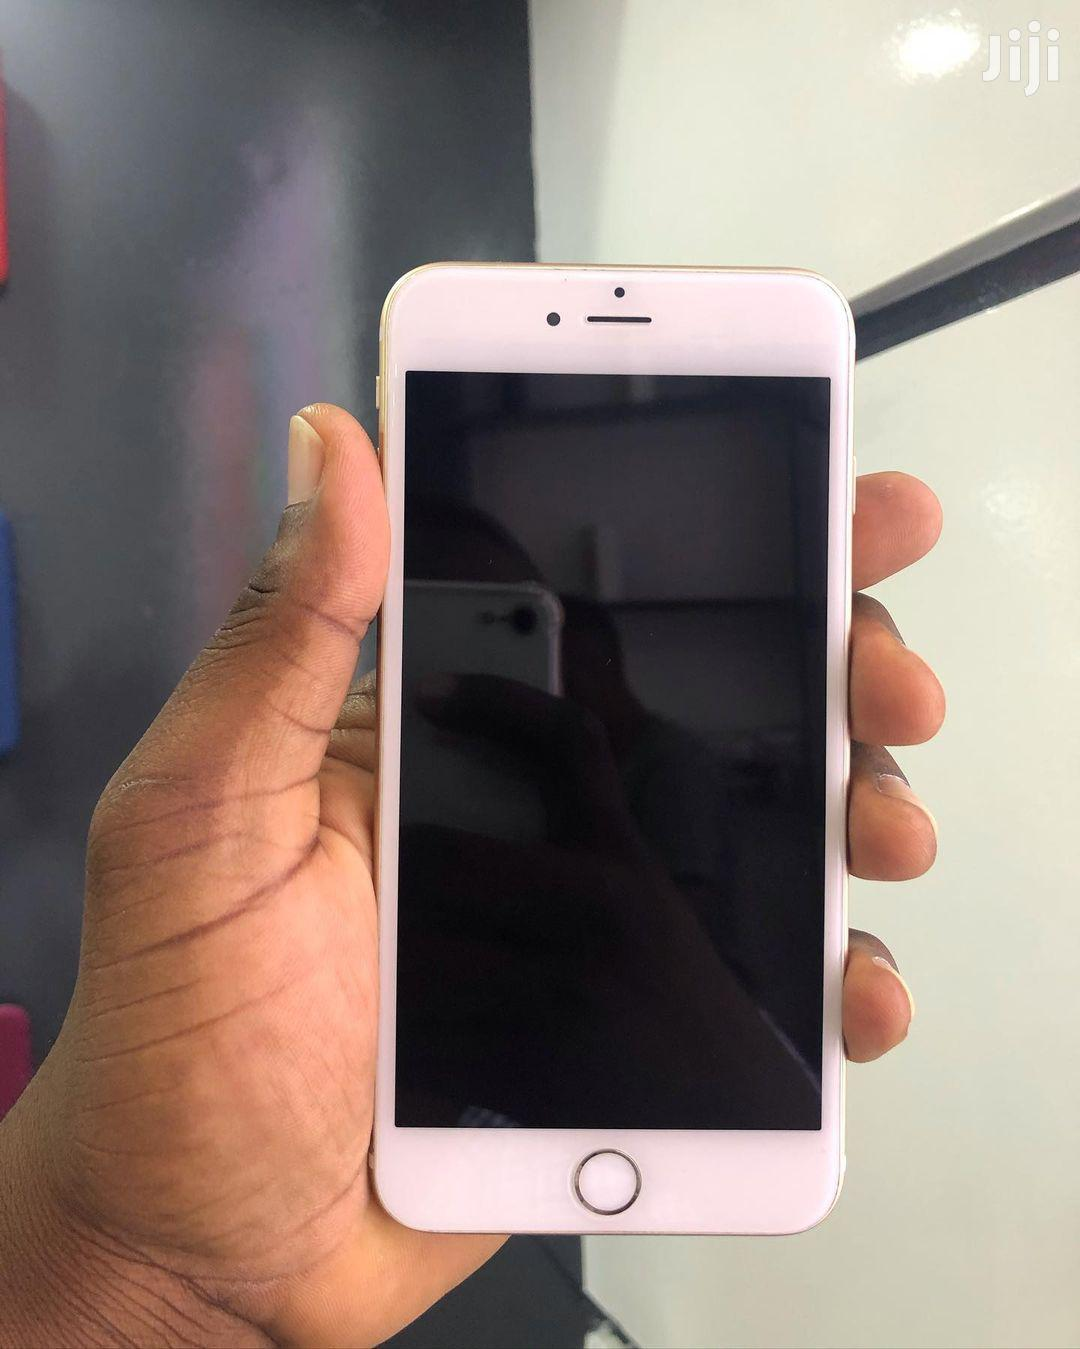 Apple iPhone 6 Plus 64 GB Gold | Mobile Phones for sale in Ilala, Dar es Salaam, Tanzania